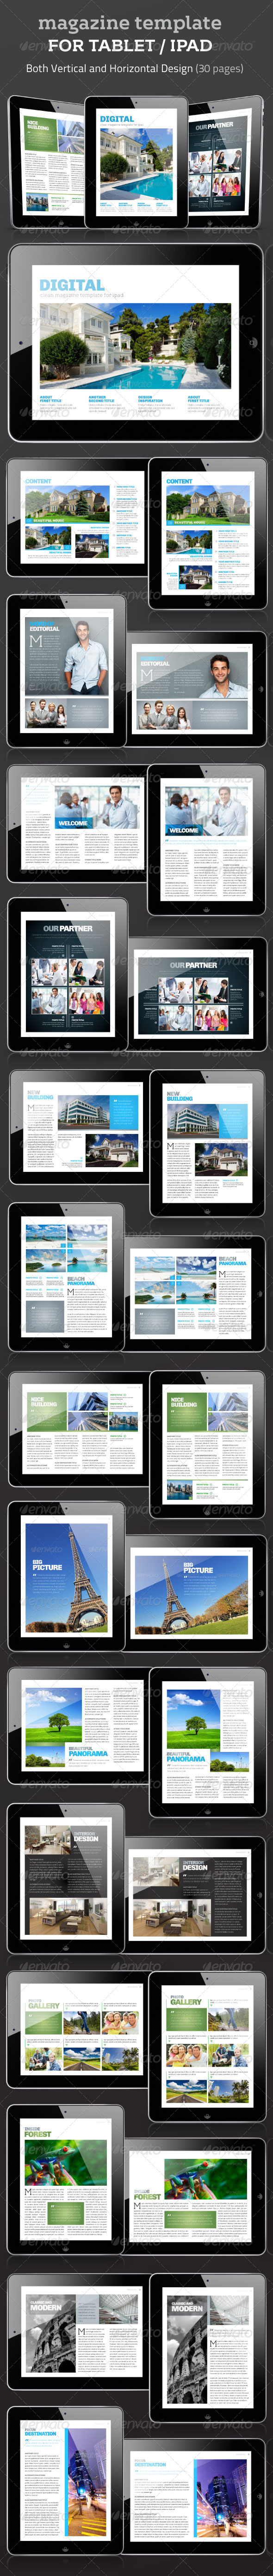 GraphicRiver Magazine Template for Tablet 3393500